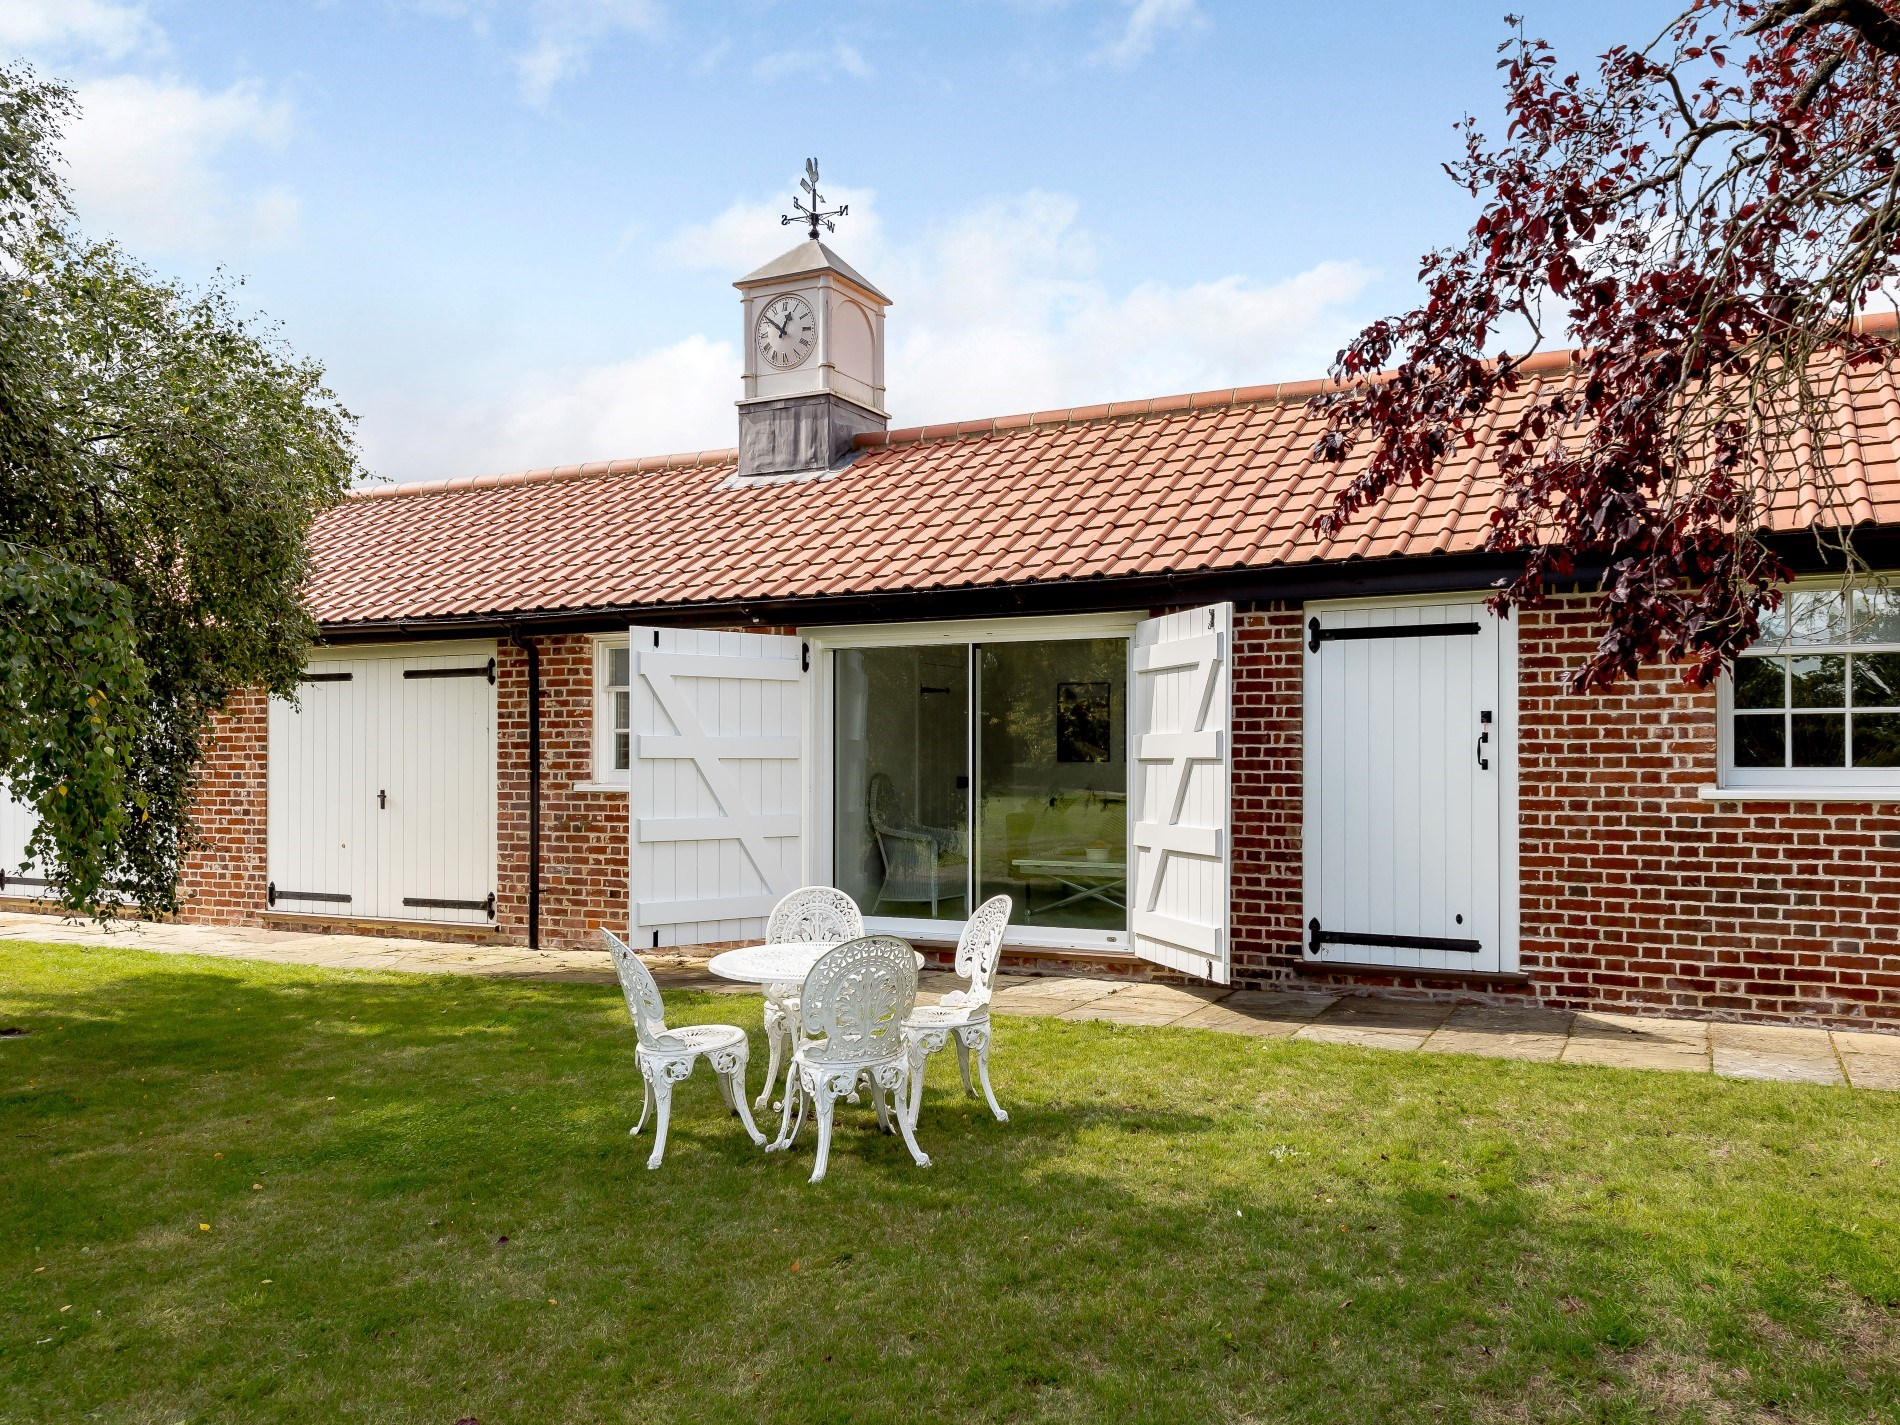 1 Bedroom Cottage in Manningtree, South of England